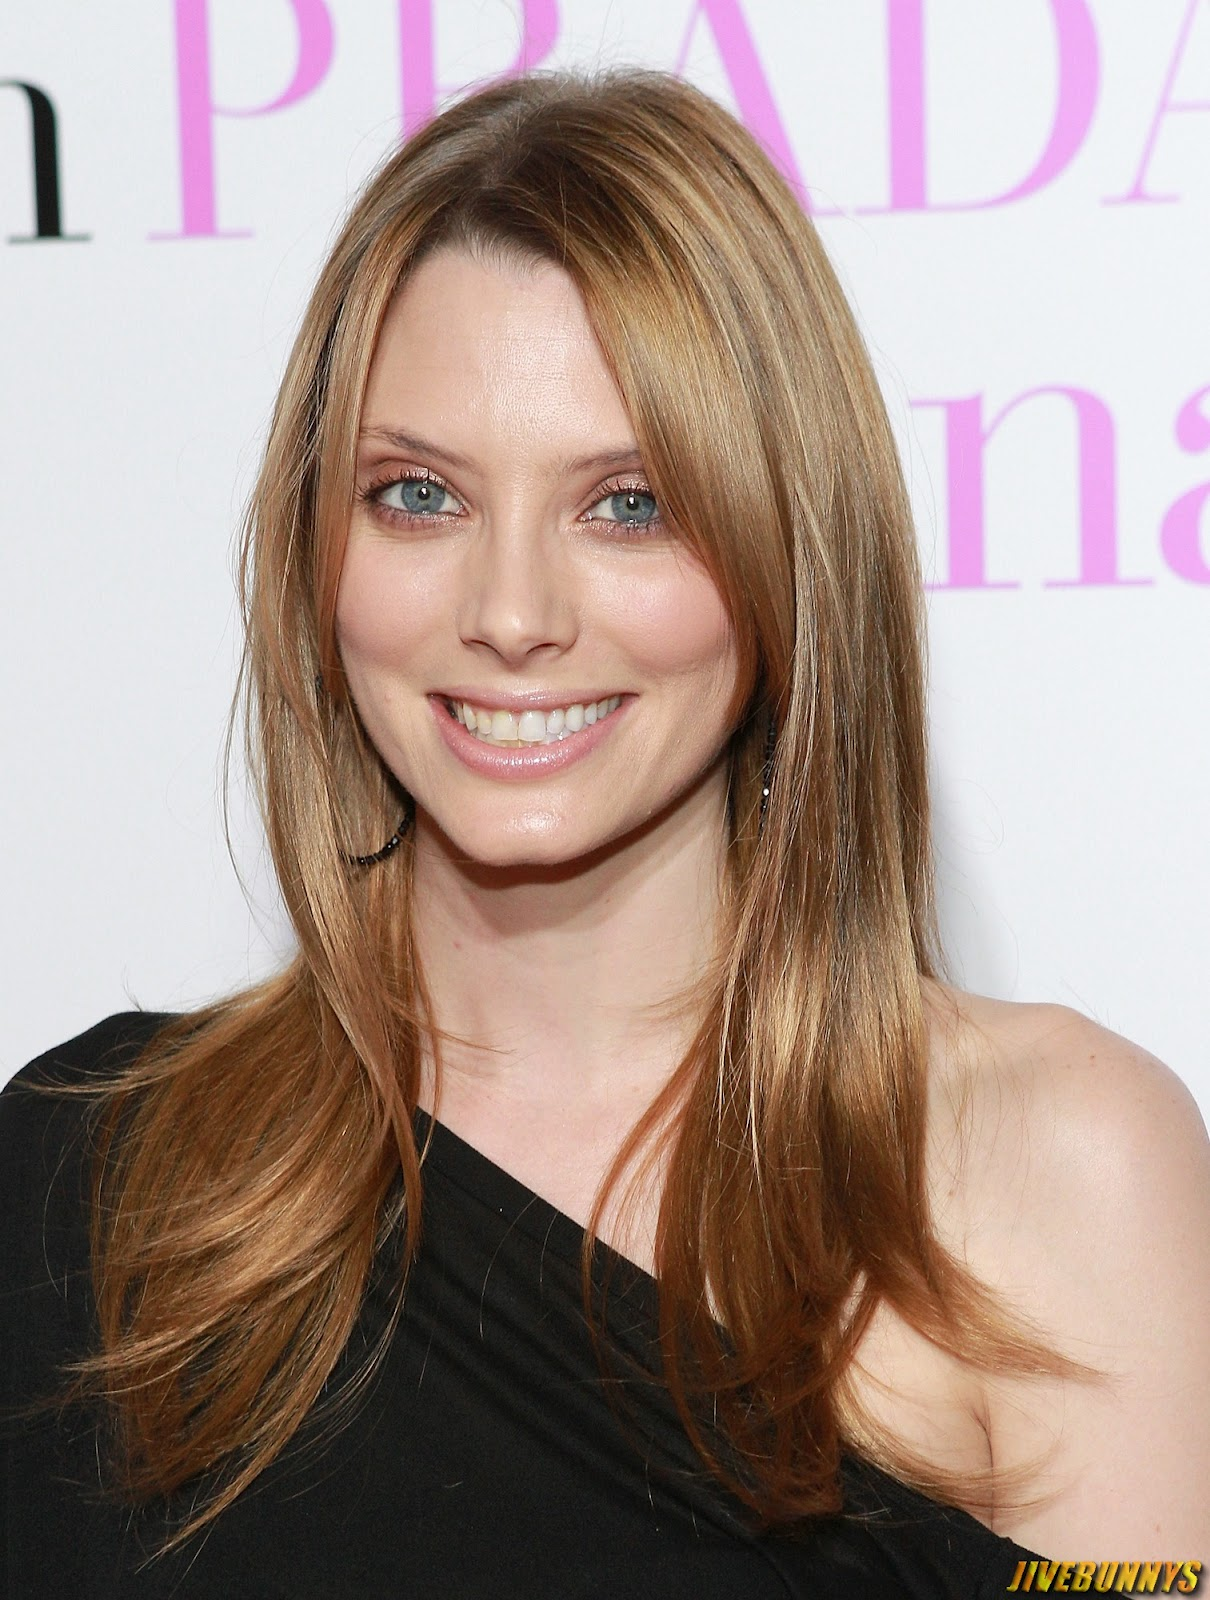 April Bowlby Bikini 49 Hot Pictures Of Apr...